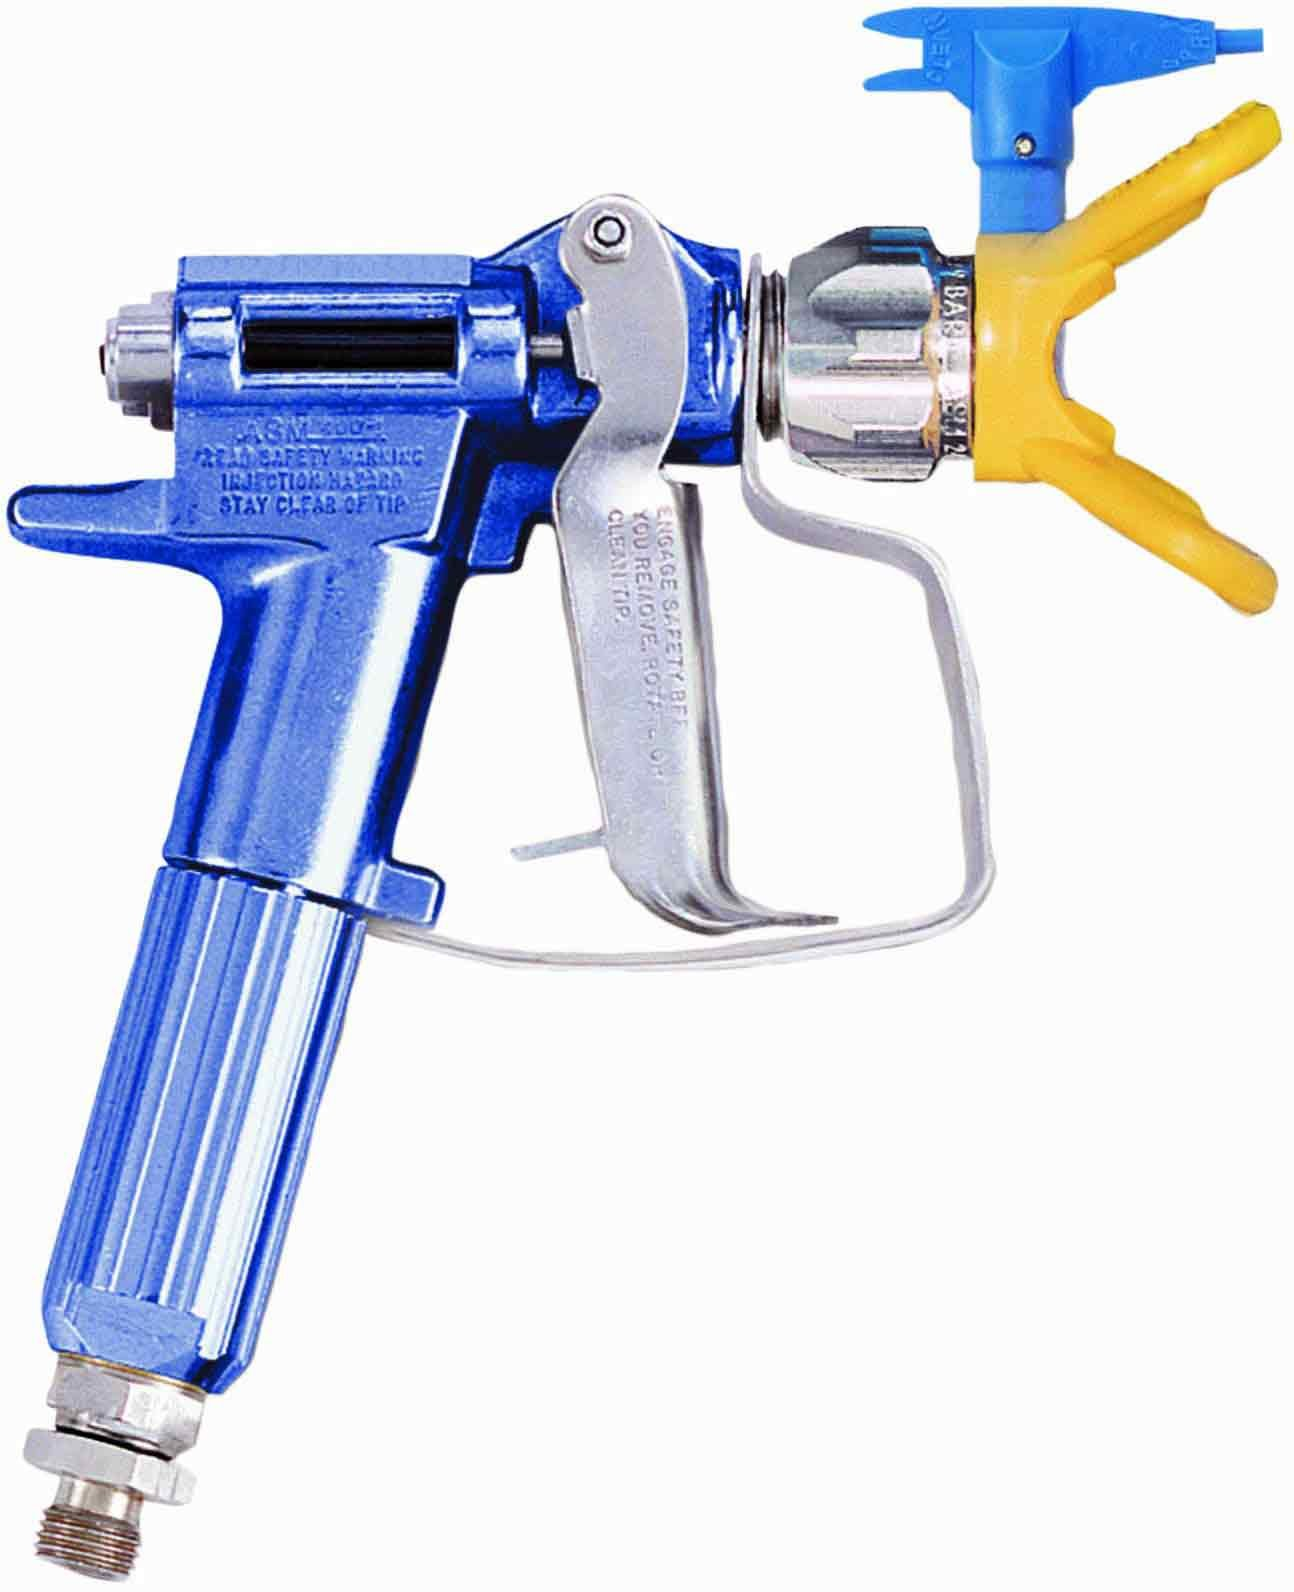 Airlessco 400 Series 2 Finger Professional Airless Spray Gun with G Thread Universal-Tip